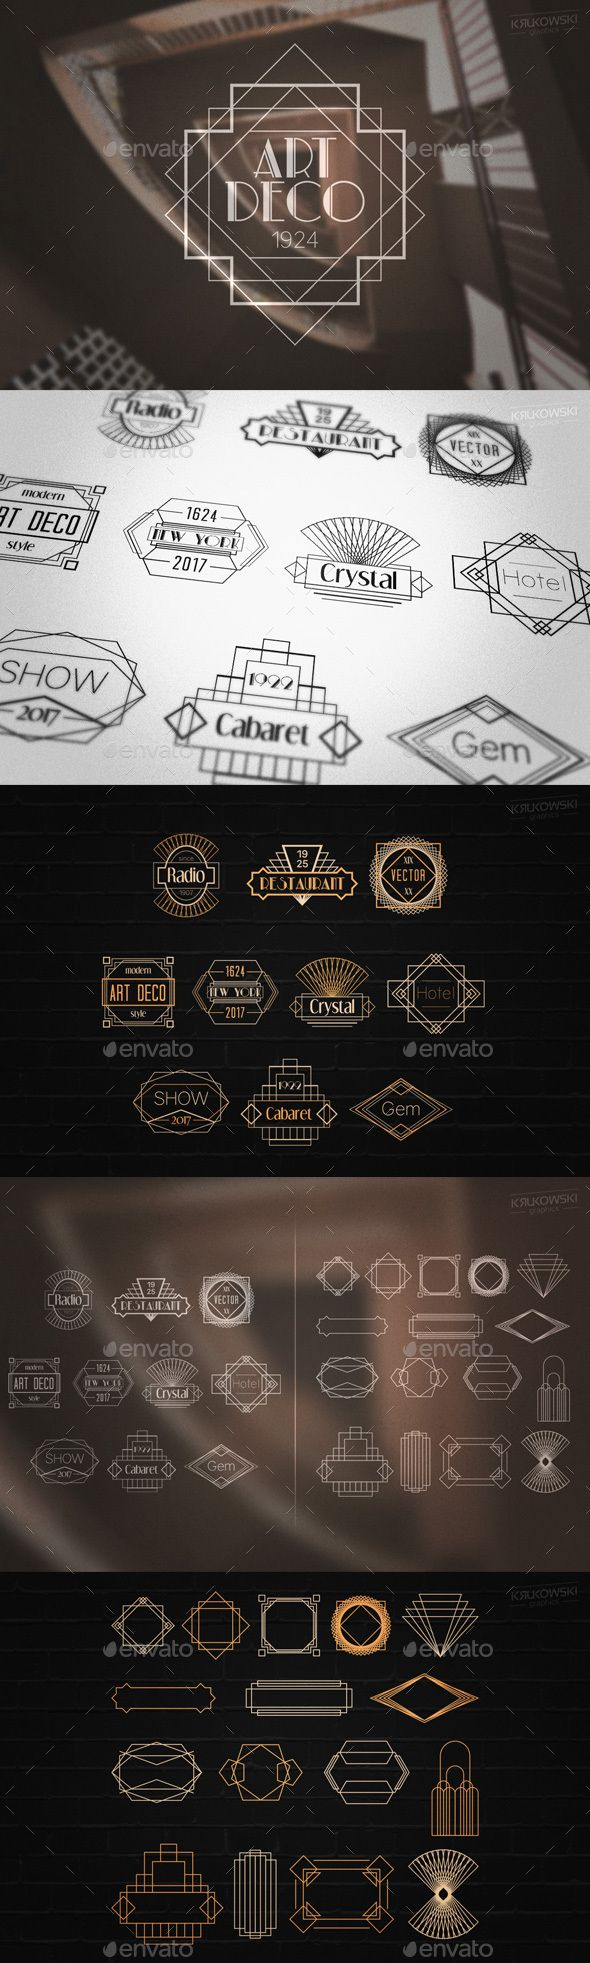 Art Deco Gatsby Style Badges Logos Template PSD, Vector EPS, AI Illustrator